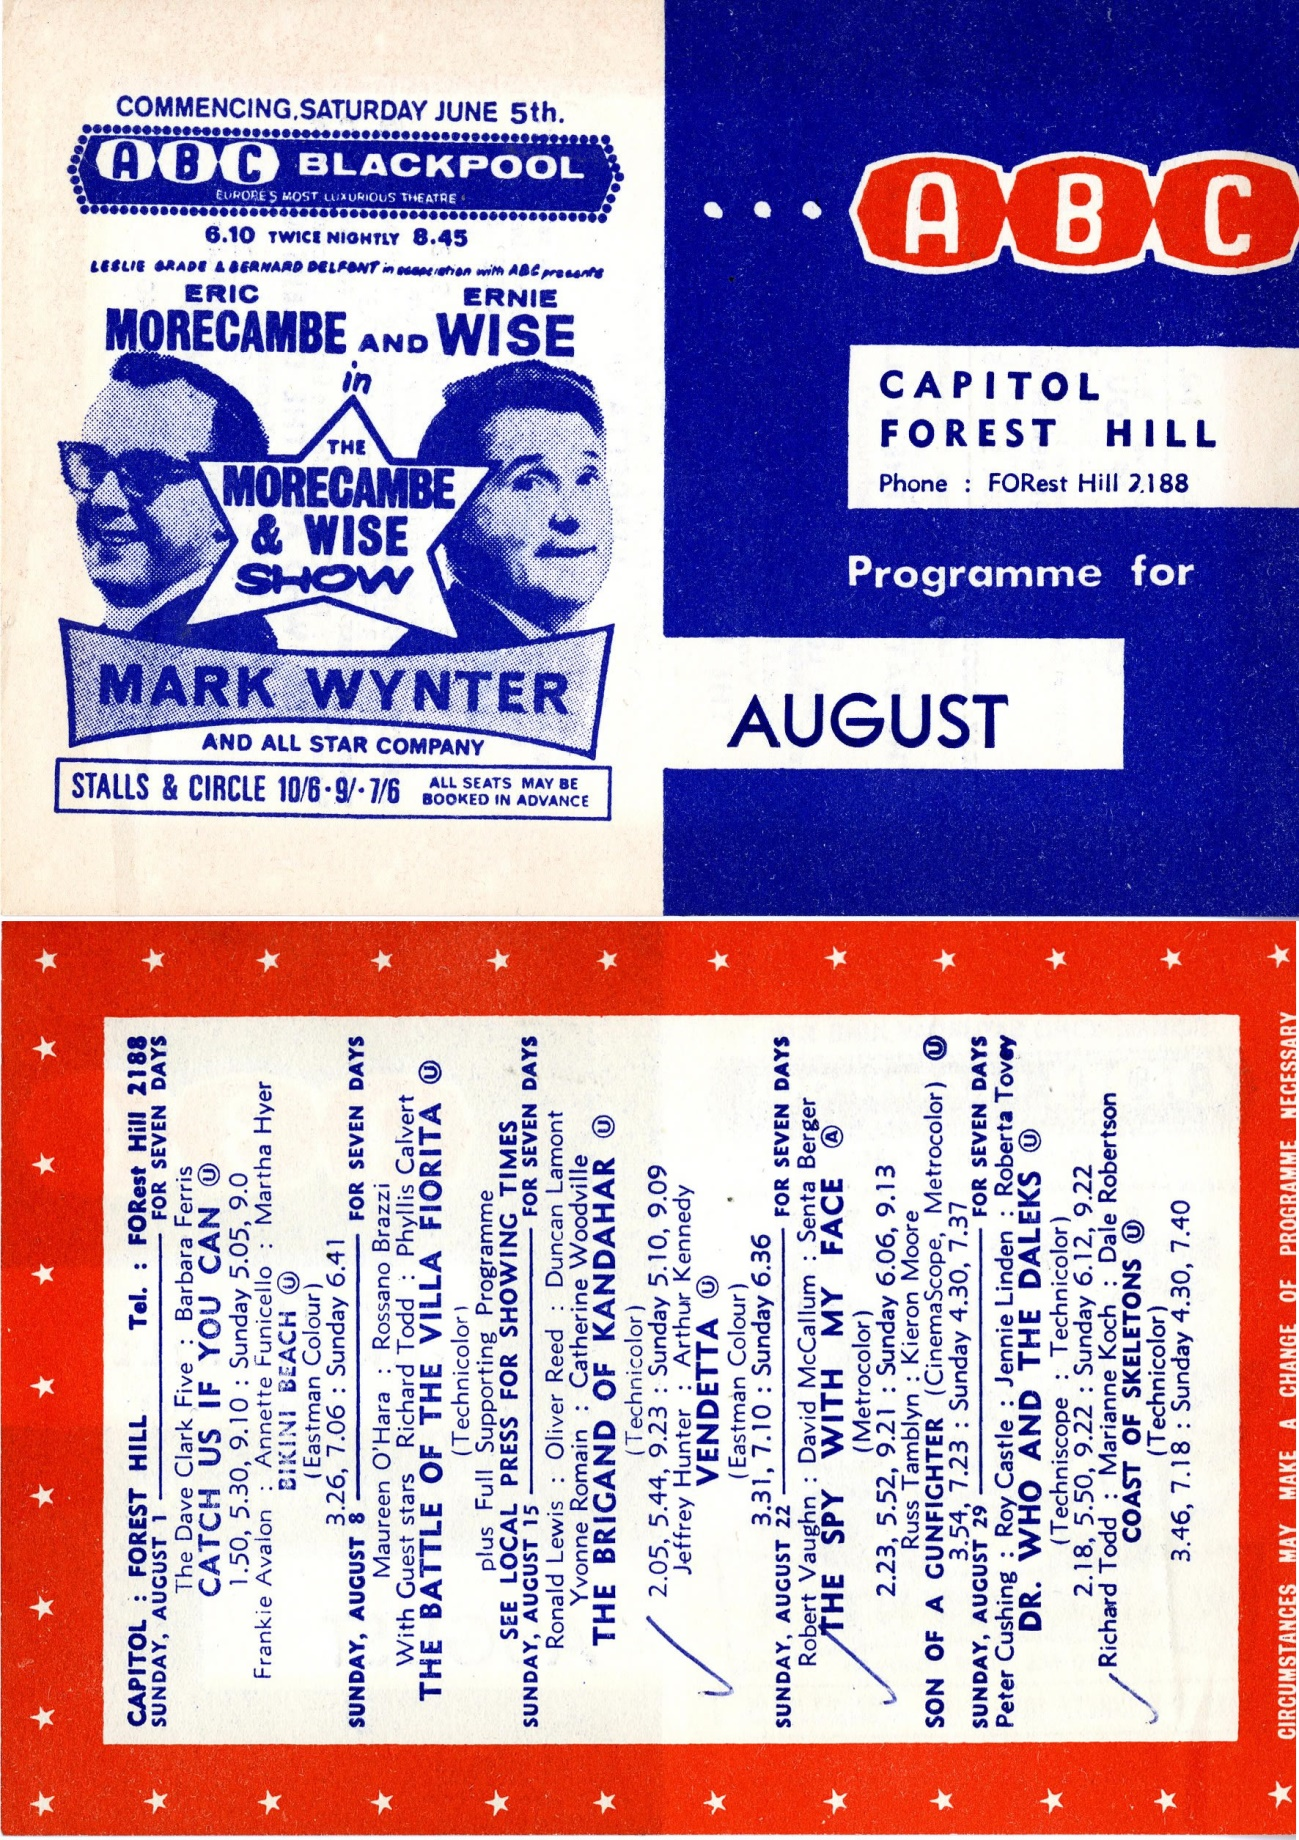 ABC Blackpool Programme for August 1965